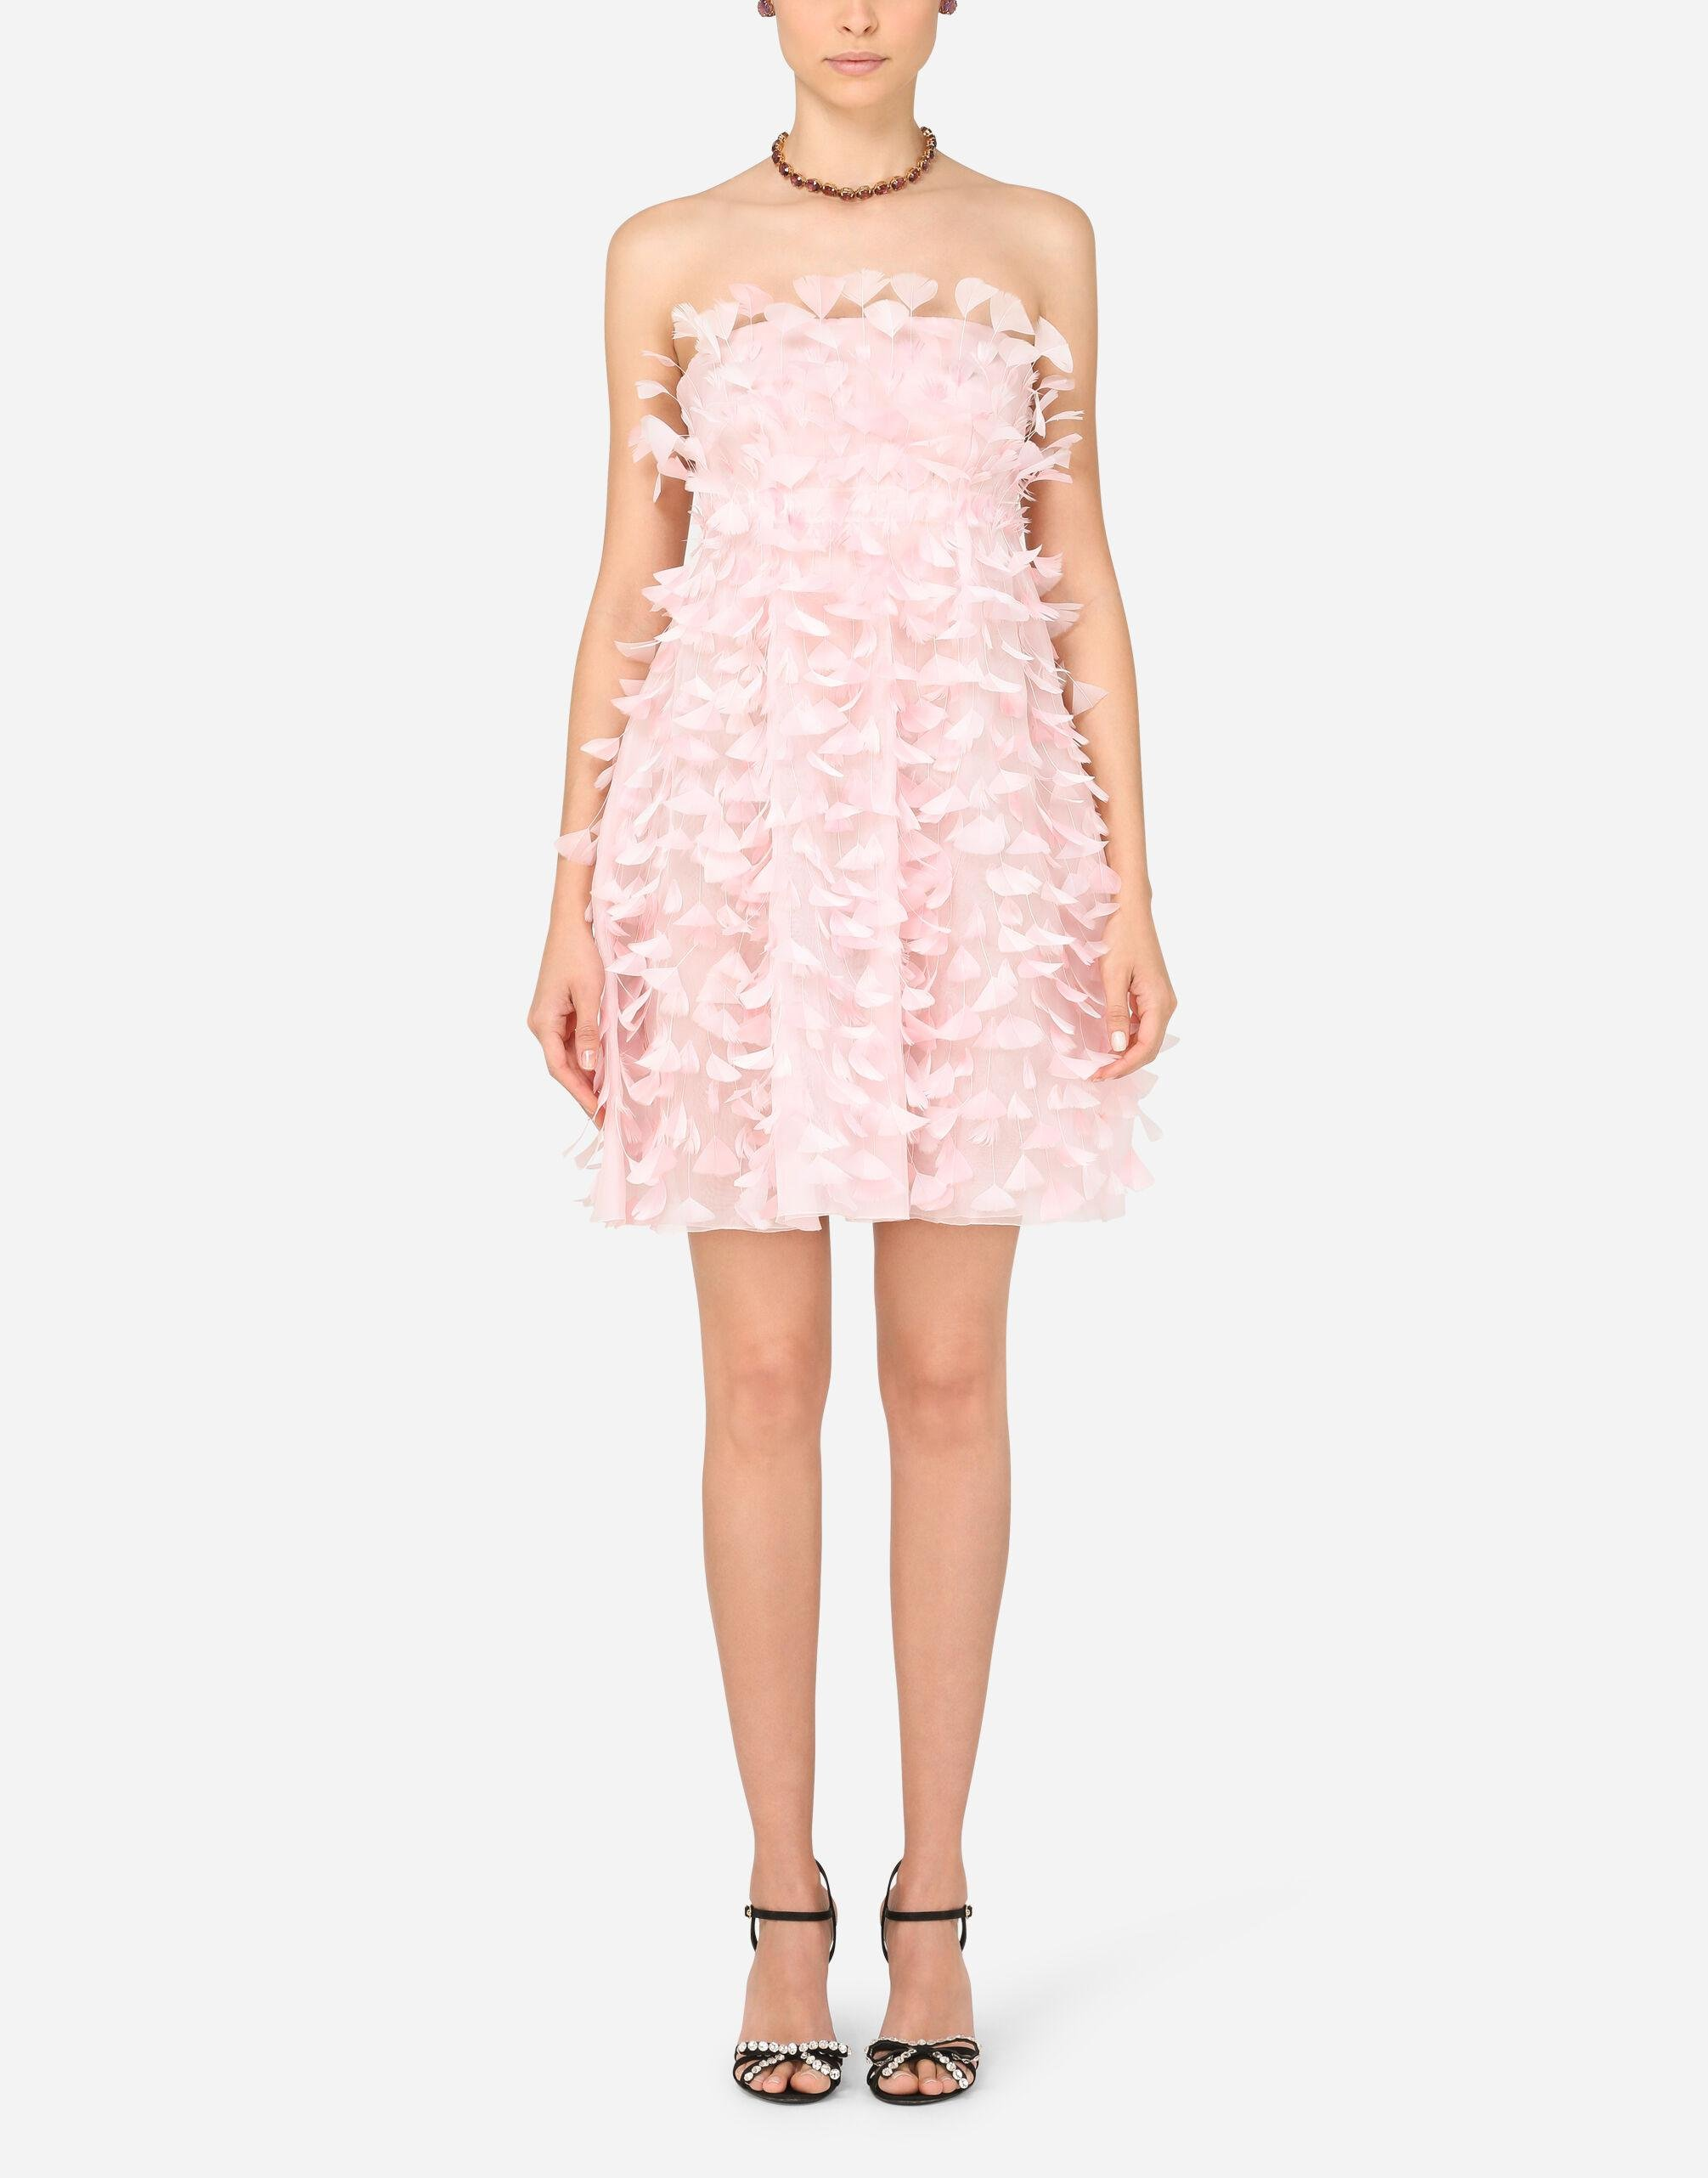 Short organza dress with feather embellishment